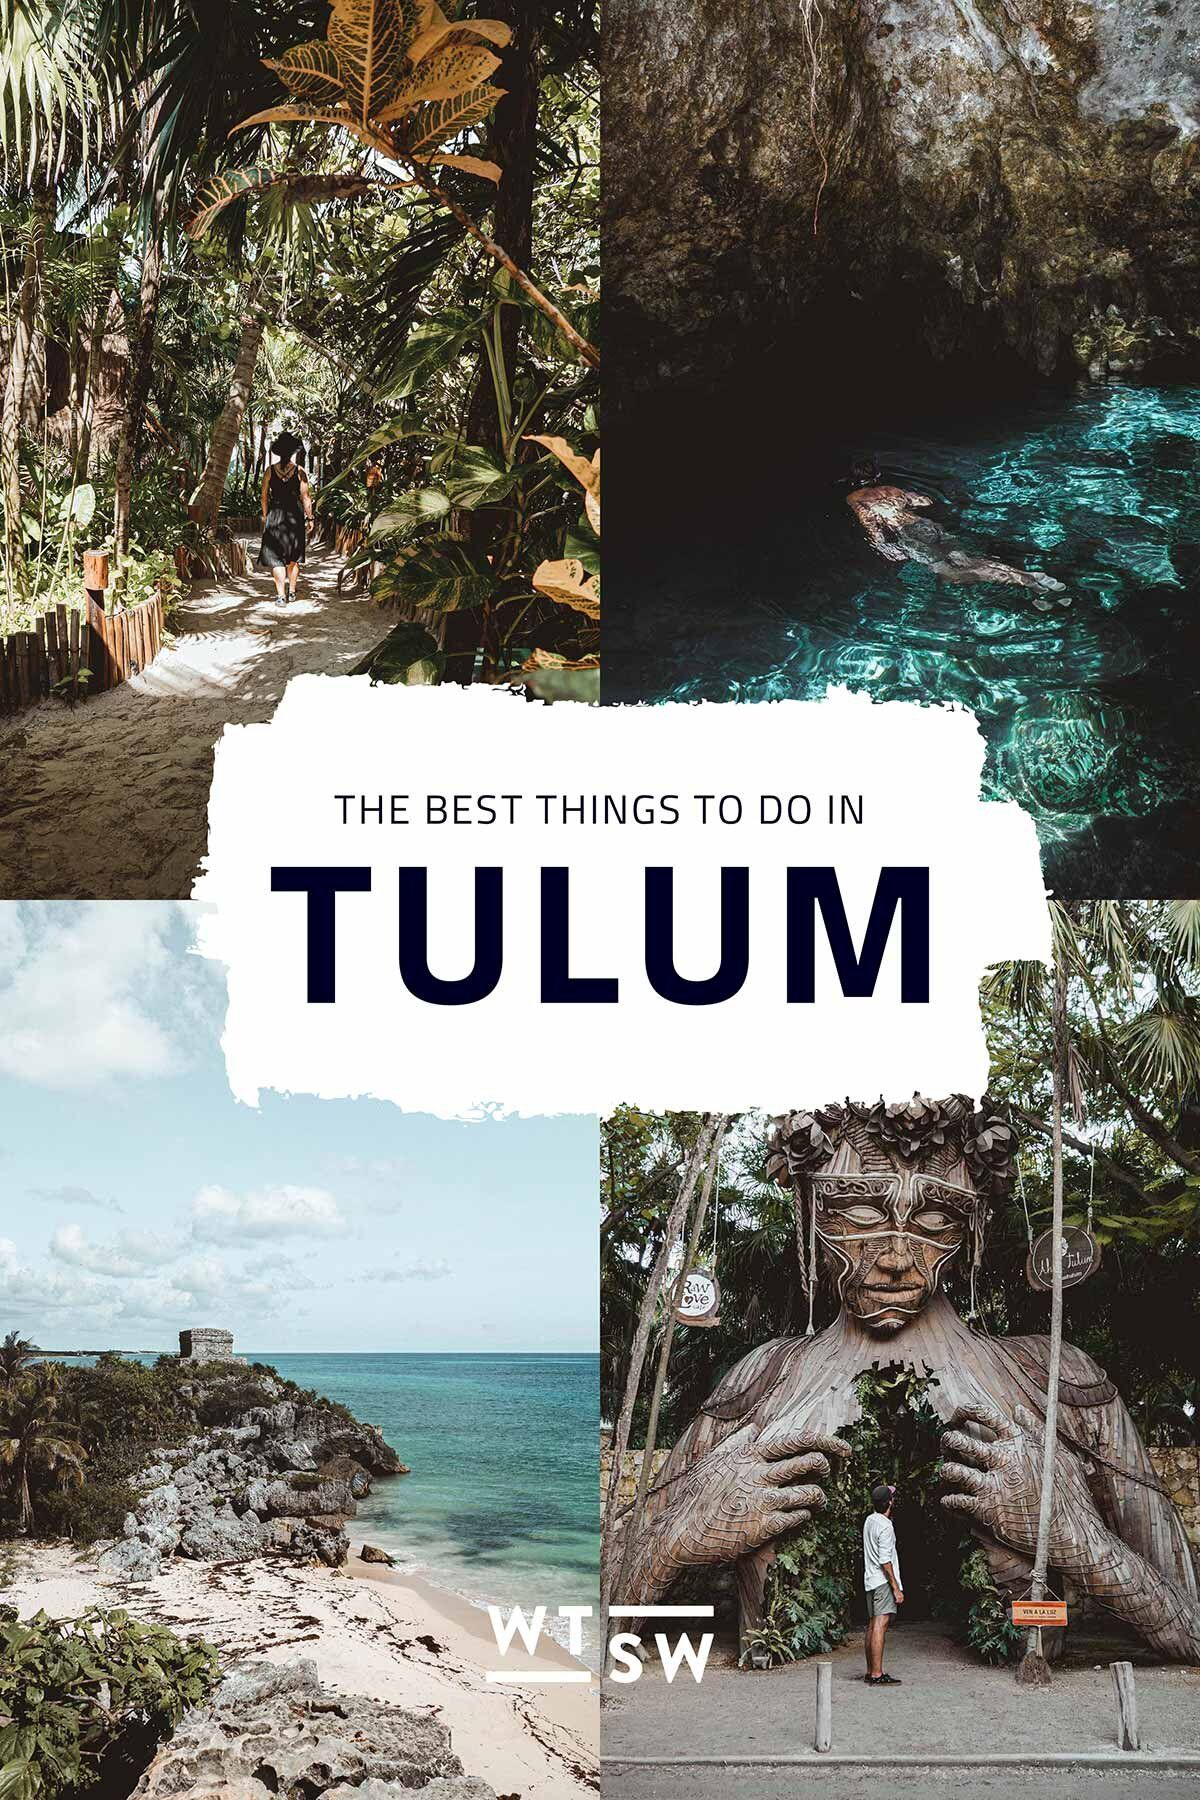 11 Wonderful Things To Do In Tulum Mexico S Trendy Beach Town The Best Activities In Tulum Where The Souls Wander Tulum Travel Tulum Travel Guide Tulum Vacation